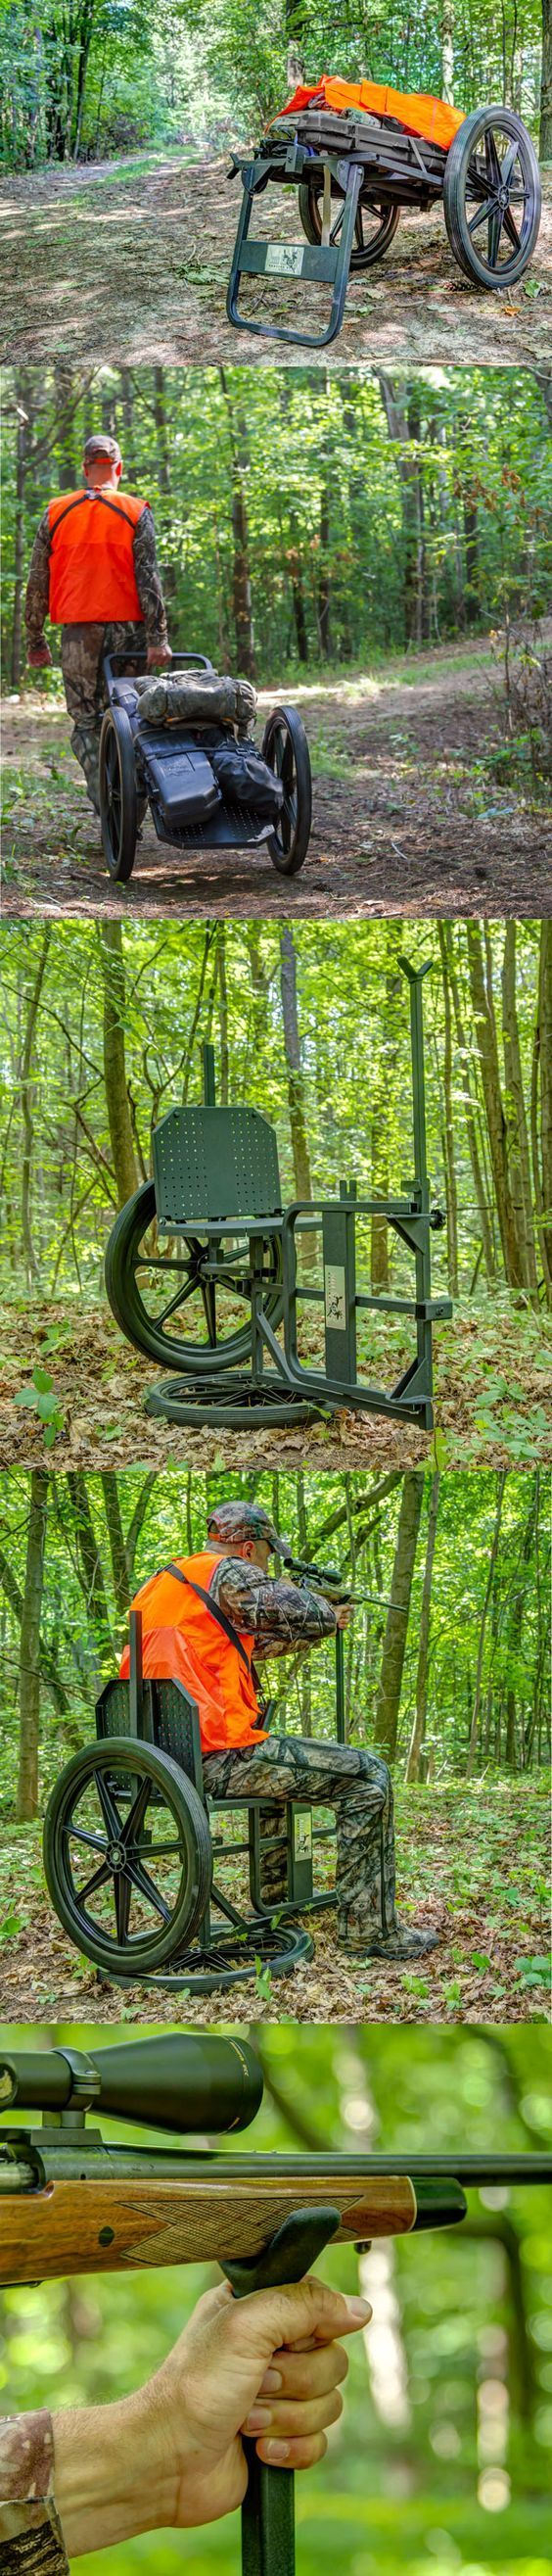 Bow hunting chair - Kill Shot Throne Multipurpose Game Cart Hunting Chair